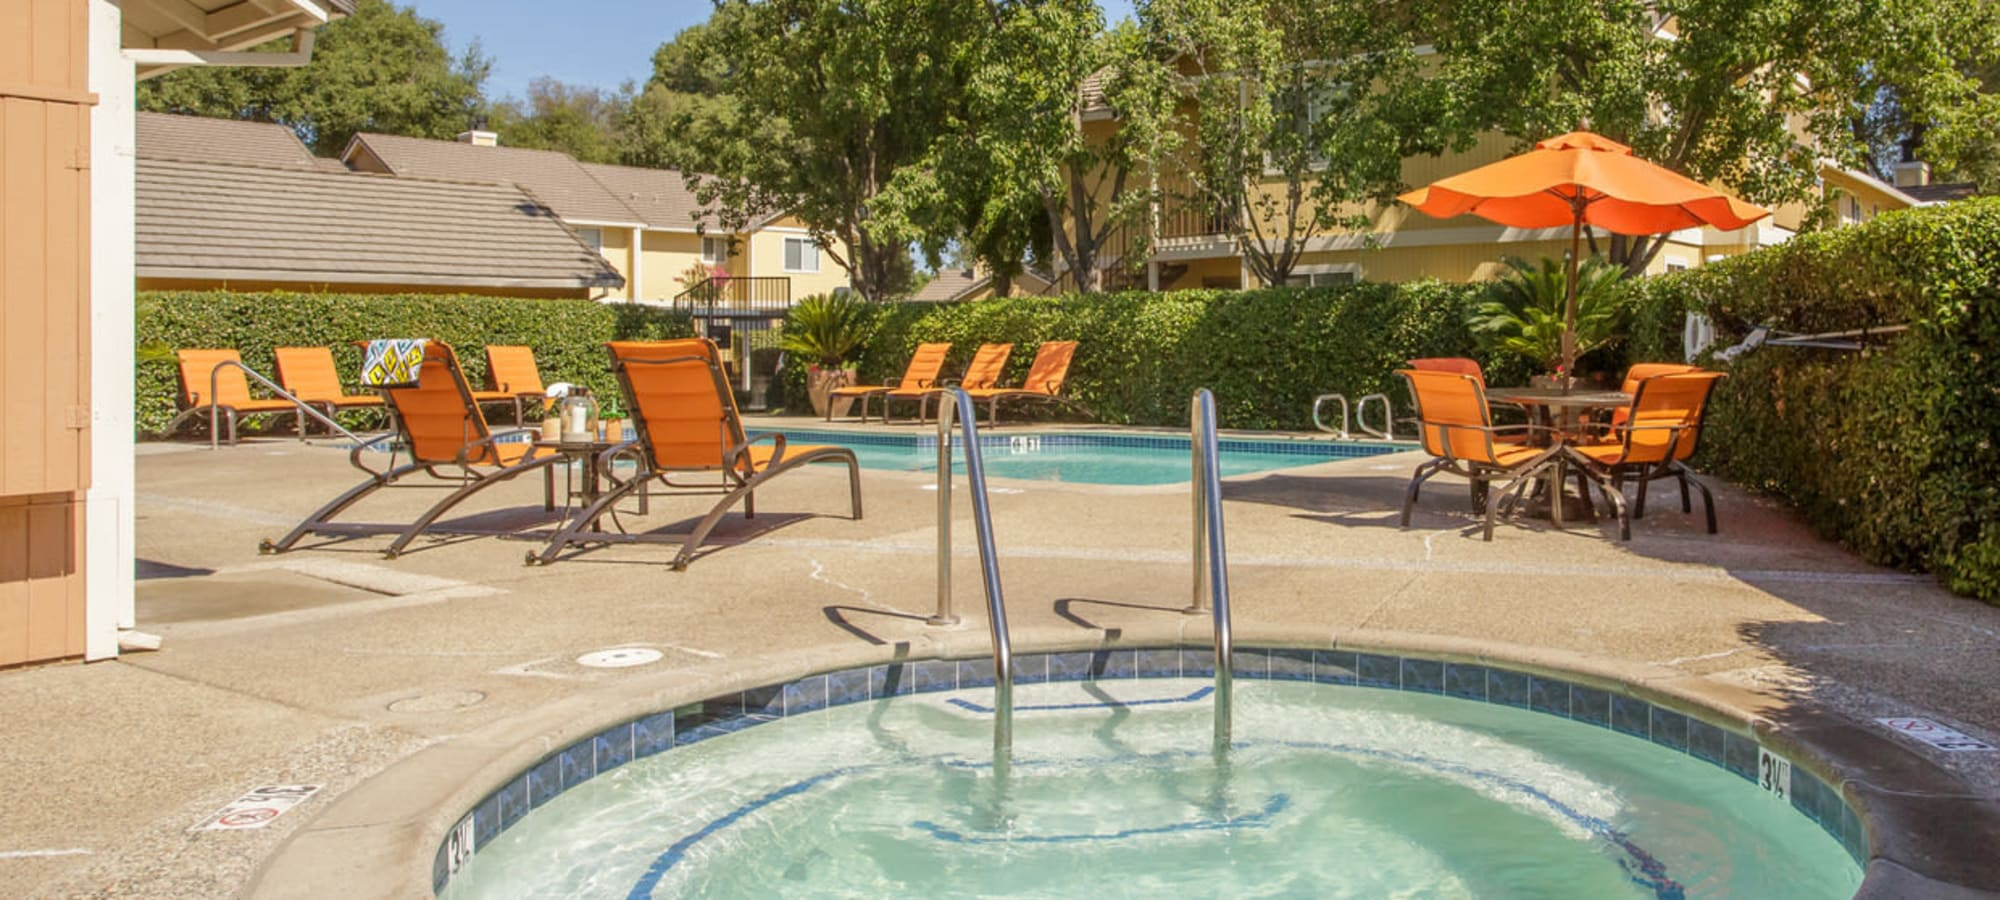 A place you can call home at Heather Ridge in Orangevale, California